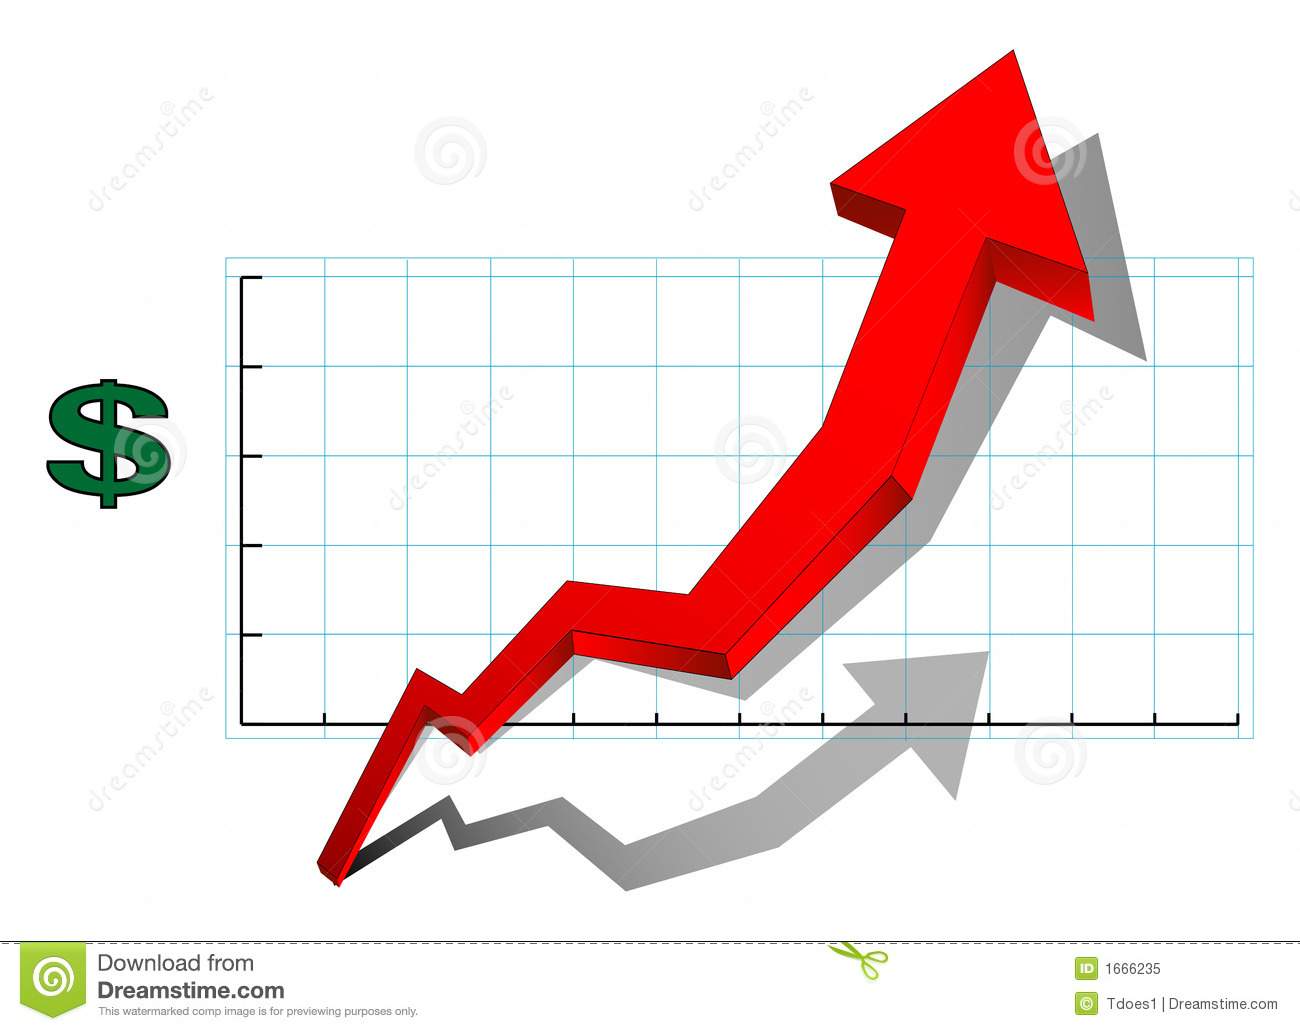 Charts Cliparts | Free download best Charts Cliparts on ClipArtMag com